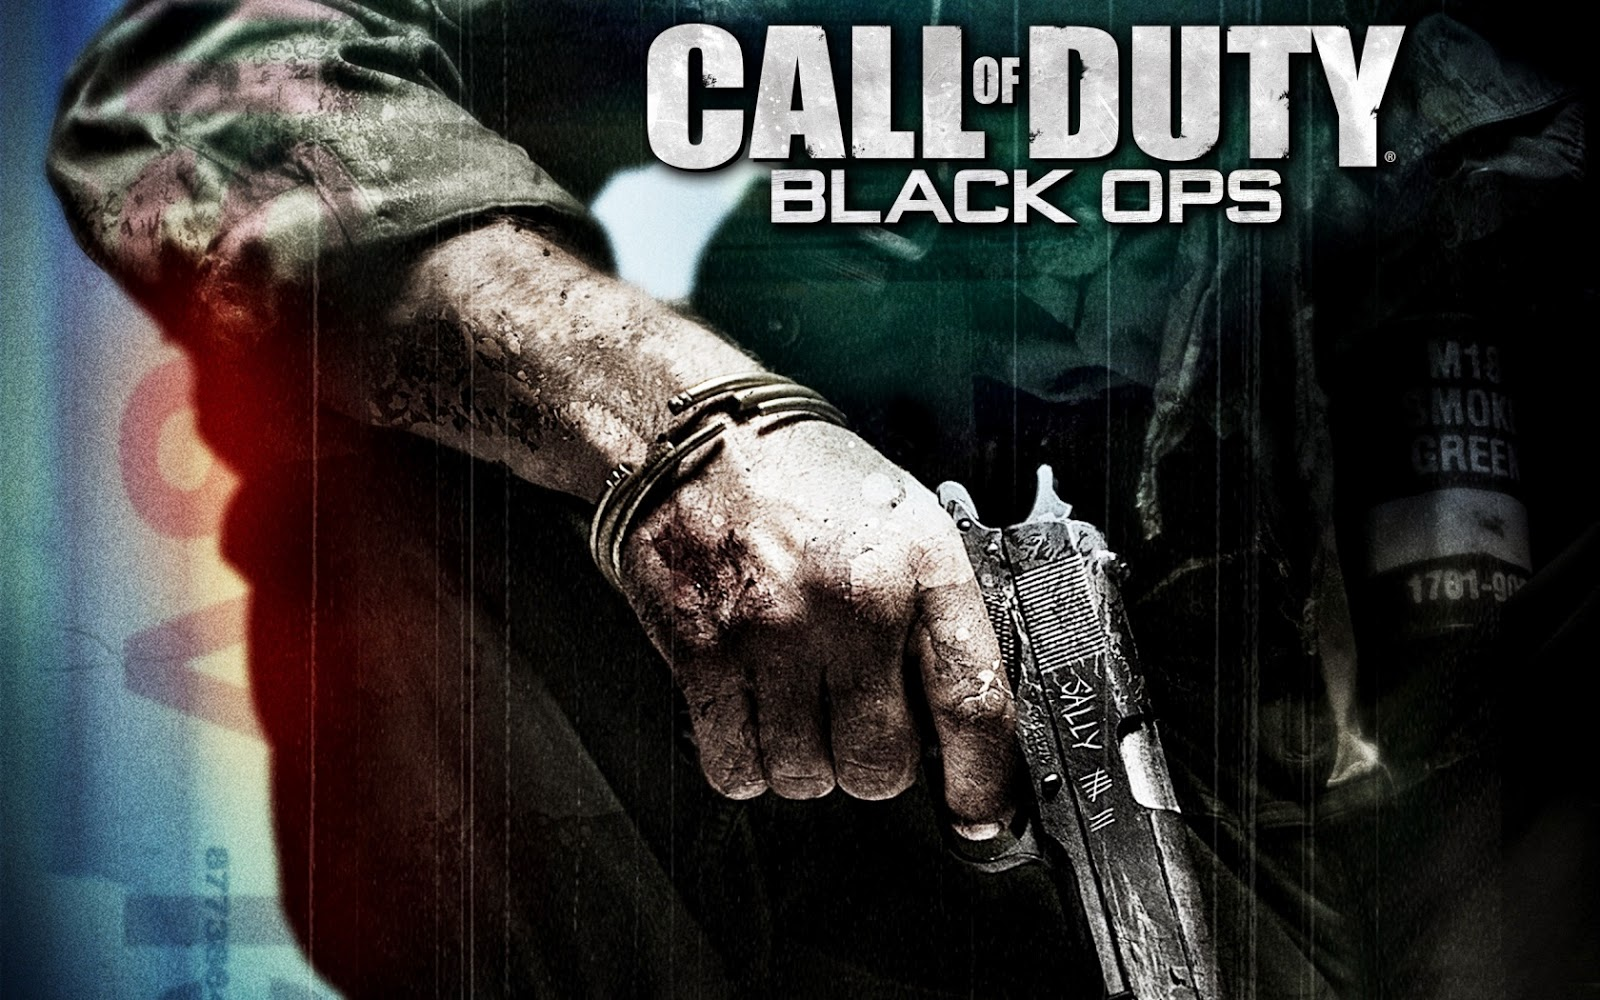 call of duty black ops 3 wallpapers 2015 fullhd boss